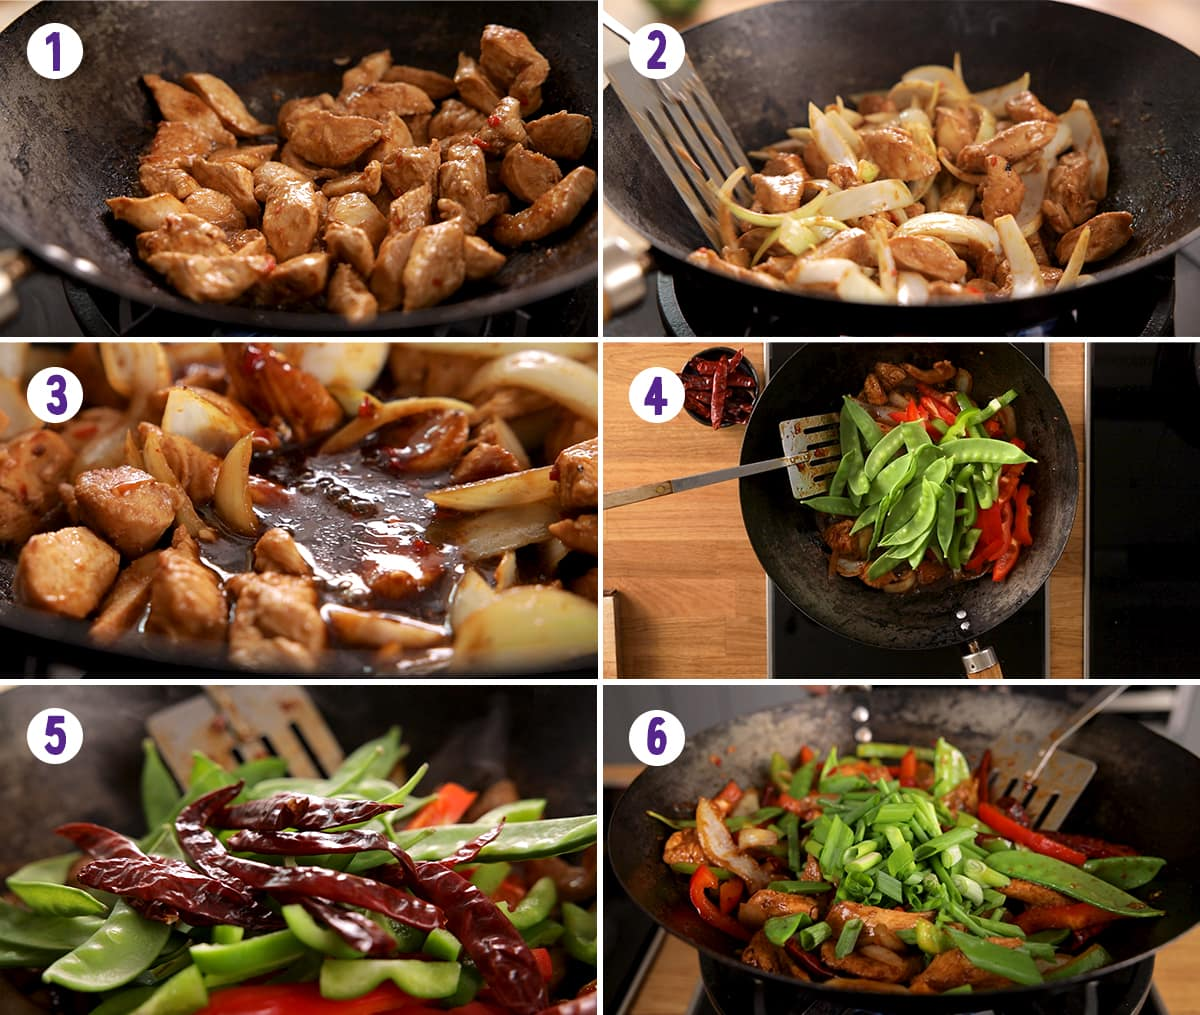 6 image collage showing final stages for making firecracker chicken stir fry